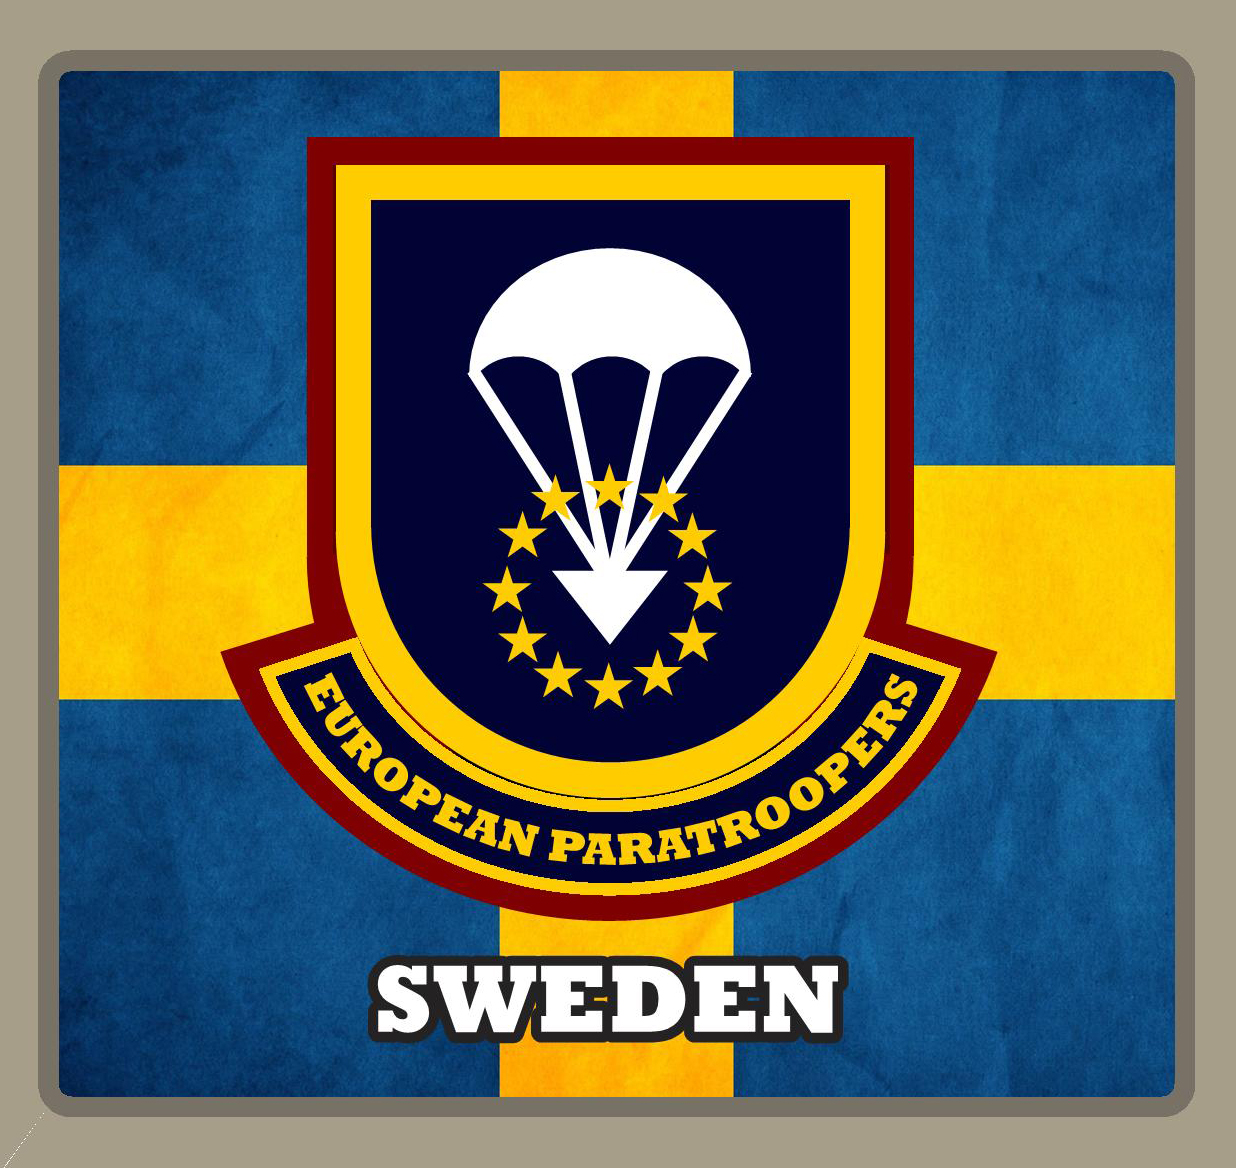 EUROPEAN PARATROOPERS SE 2017